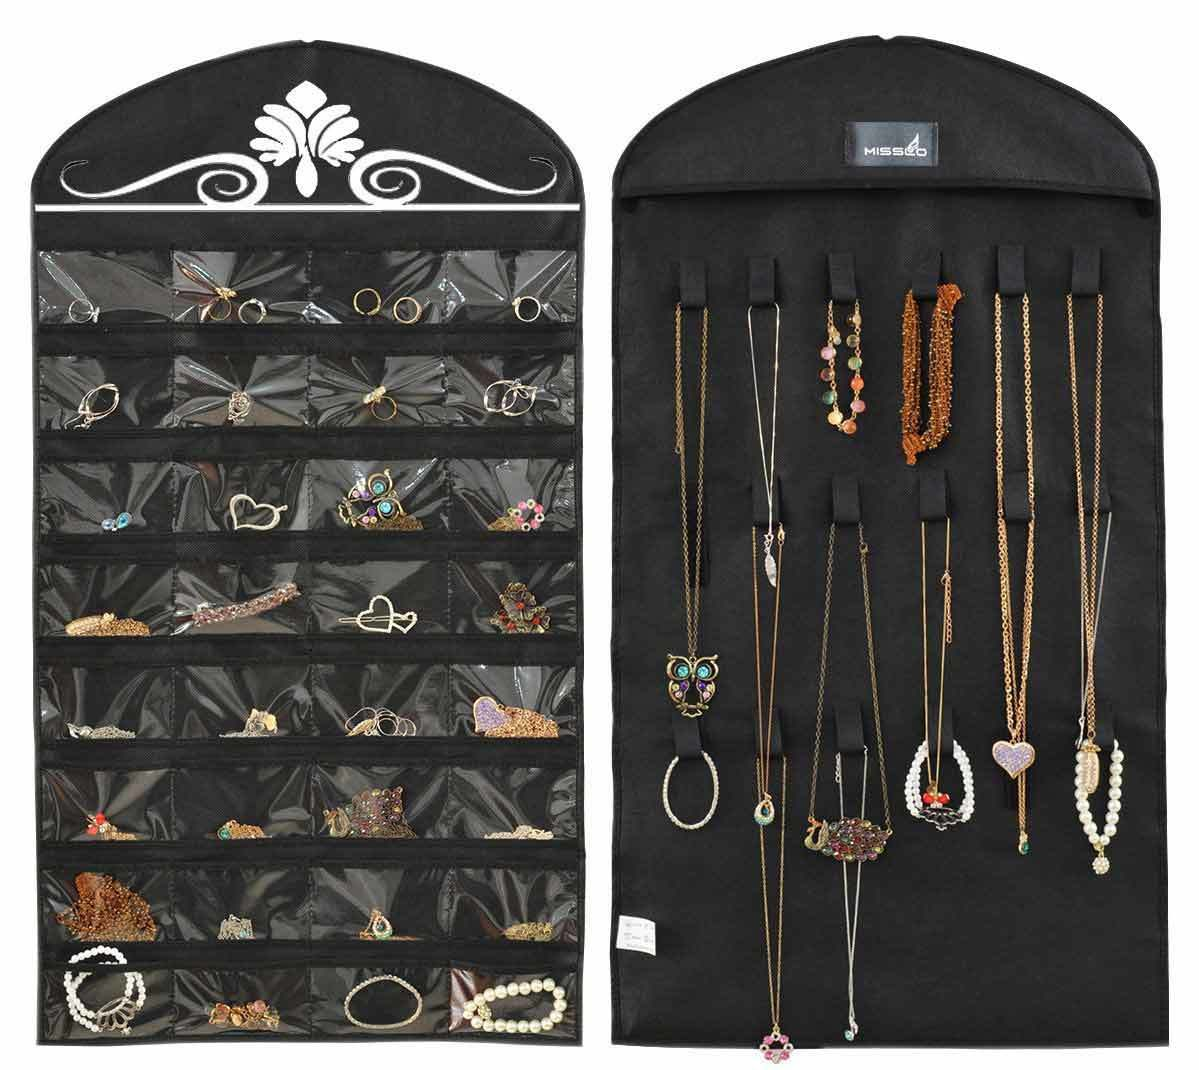 Black hanging jewelry organizer filled with a variety of jewelry photo